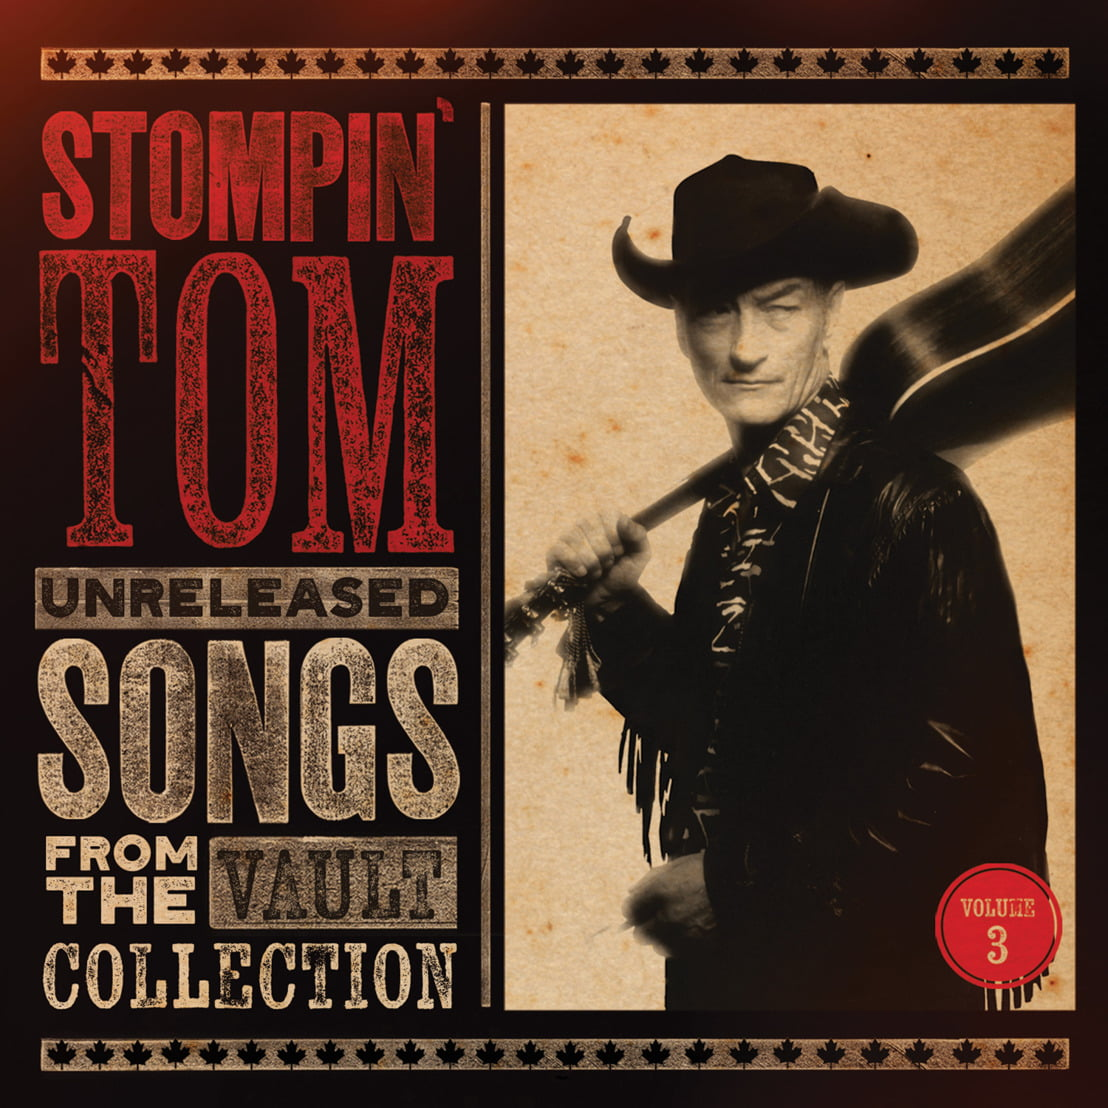 Stompin' Tom Connors Unreleased Songs From The Vault